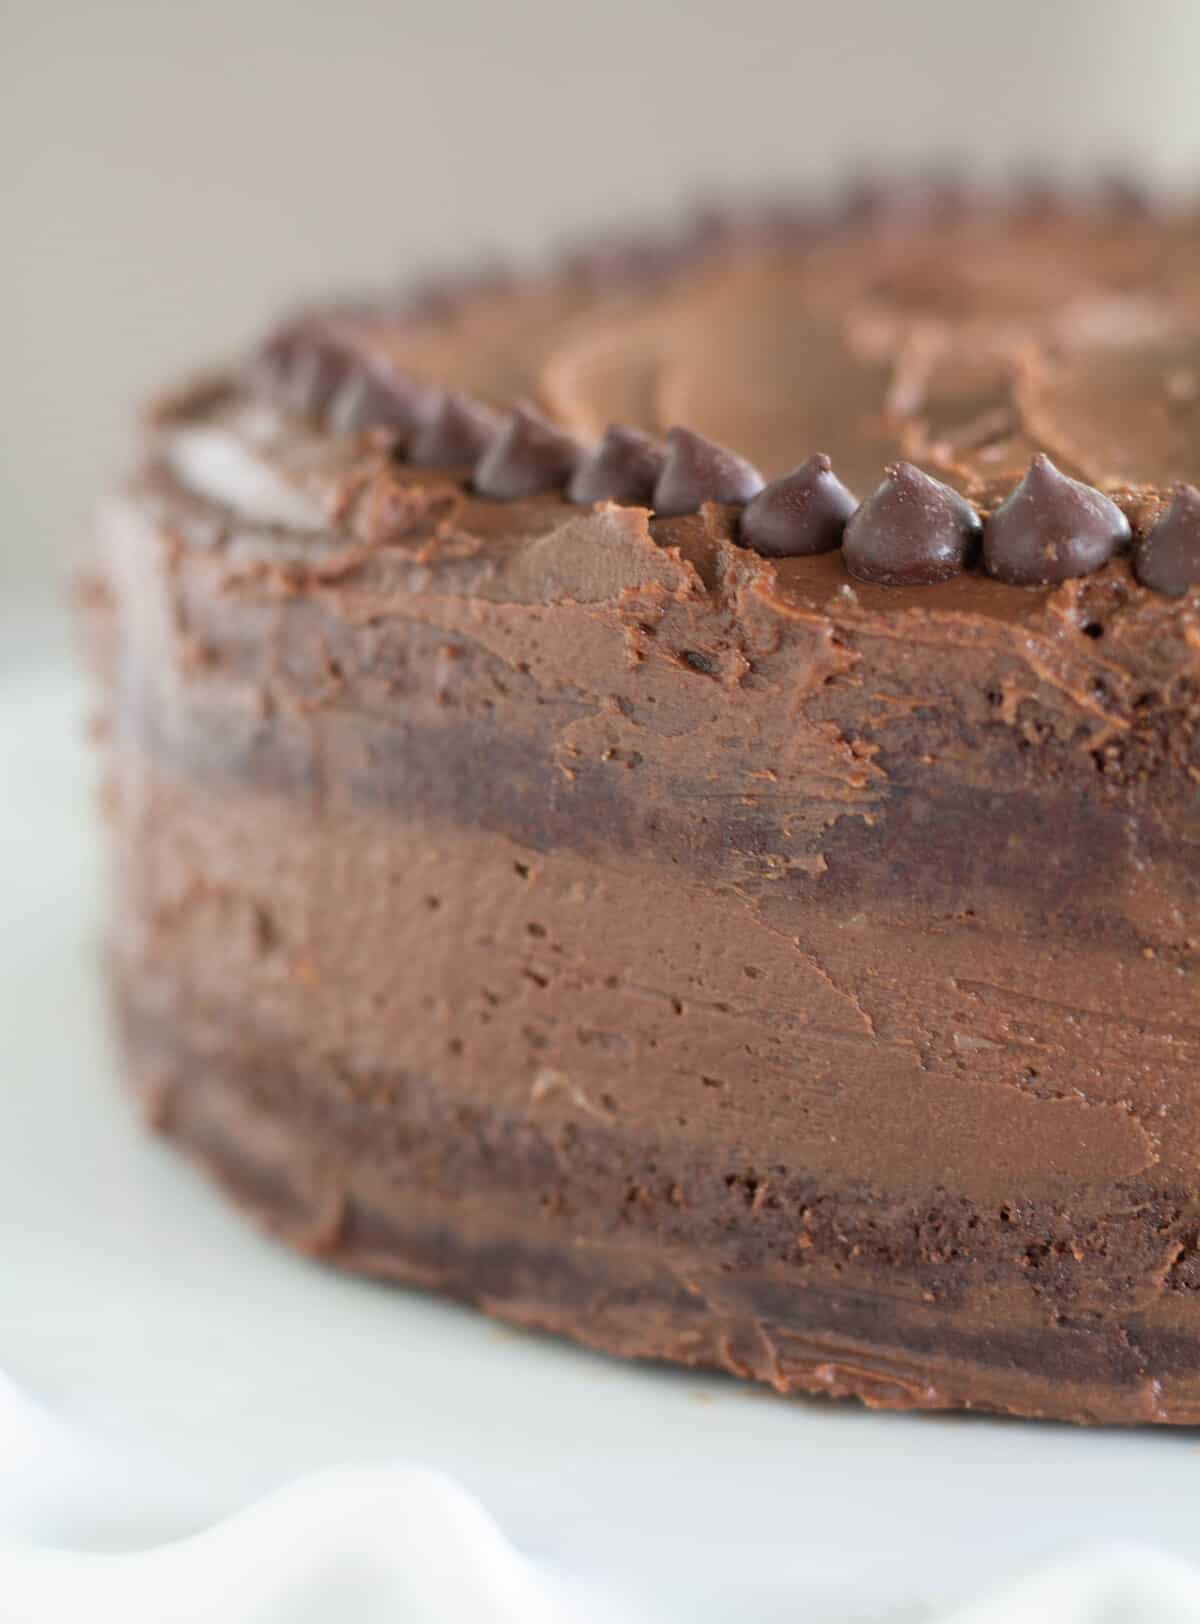 close up of chocolate frosted cake with chocolate chips